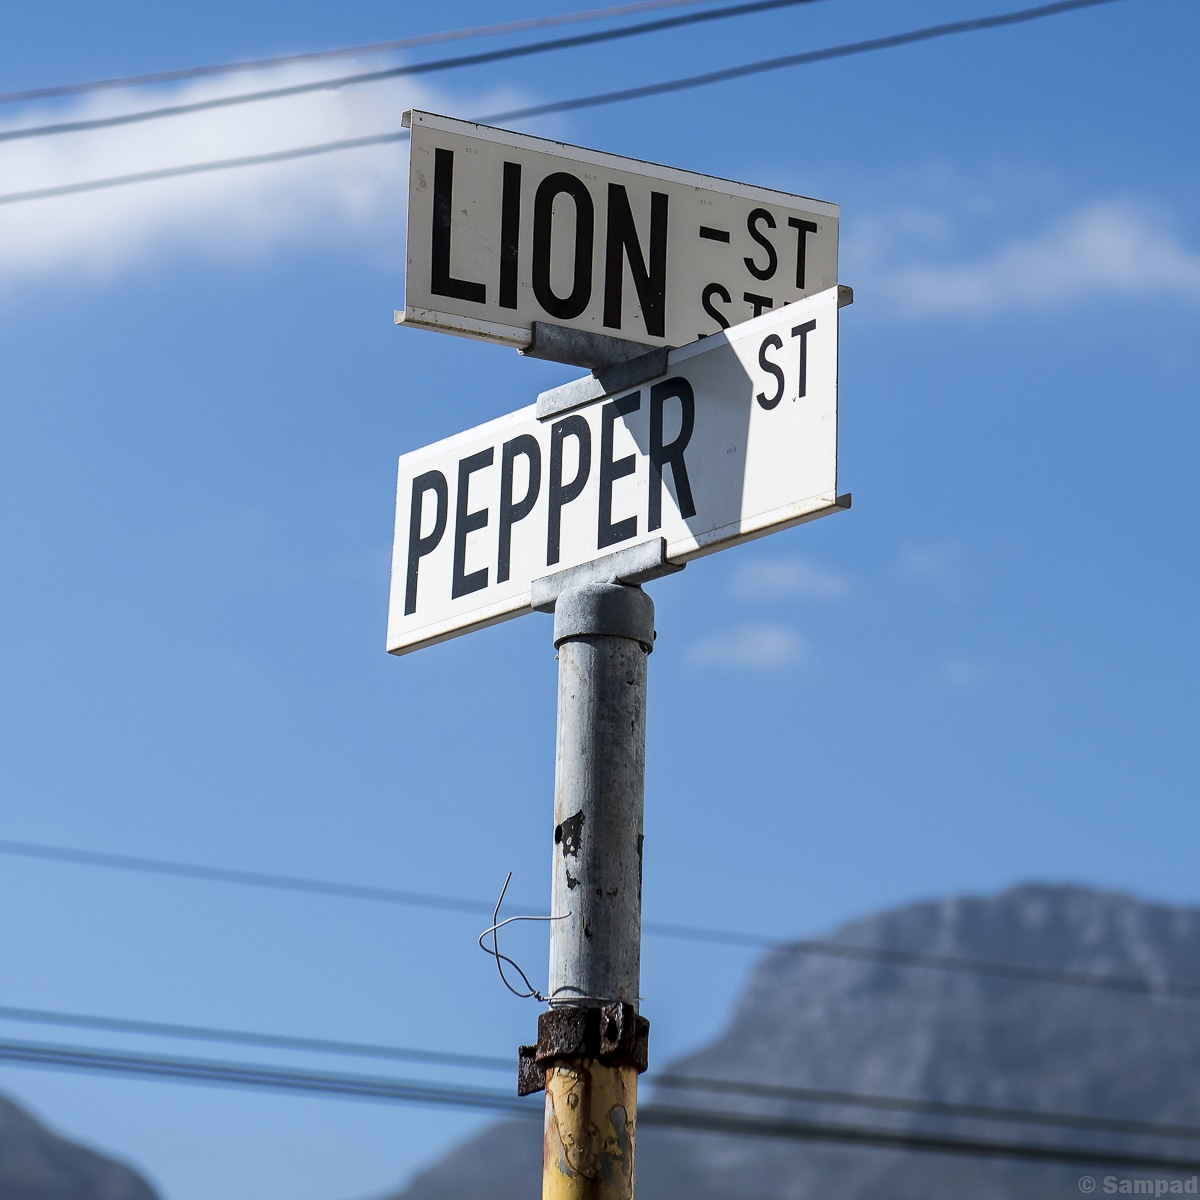 Lion pepper - Cape Town